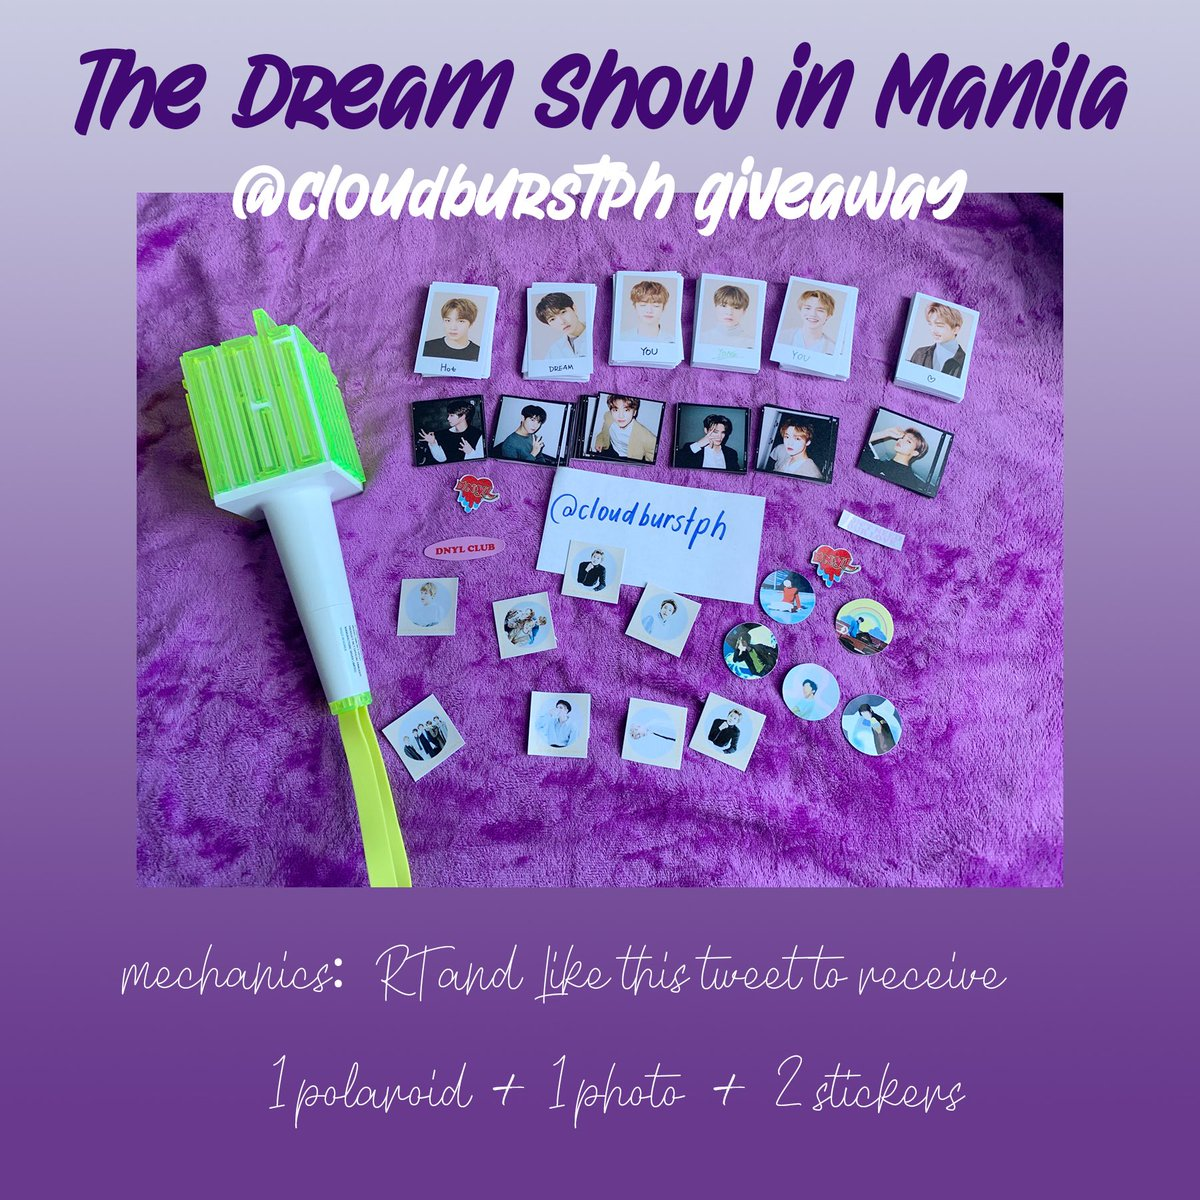 #NCTDREAMSHOWinMANILA GIVEAWAY   Mechanics: RT+Like this tweet to get 1 polaroid + 1 mini photo + 2 stickers   Location: TBA Time: 1 pm onwards and after the con for those who need to queue early  Just show proof on D-DAY   I'm also selling merch so dm for reservations  <br>http://pic.twitter.com/2SgDohxJAV